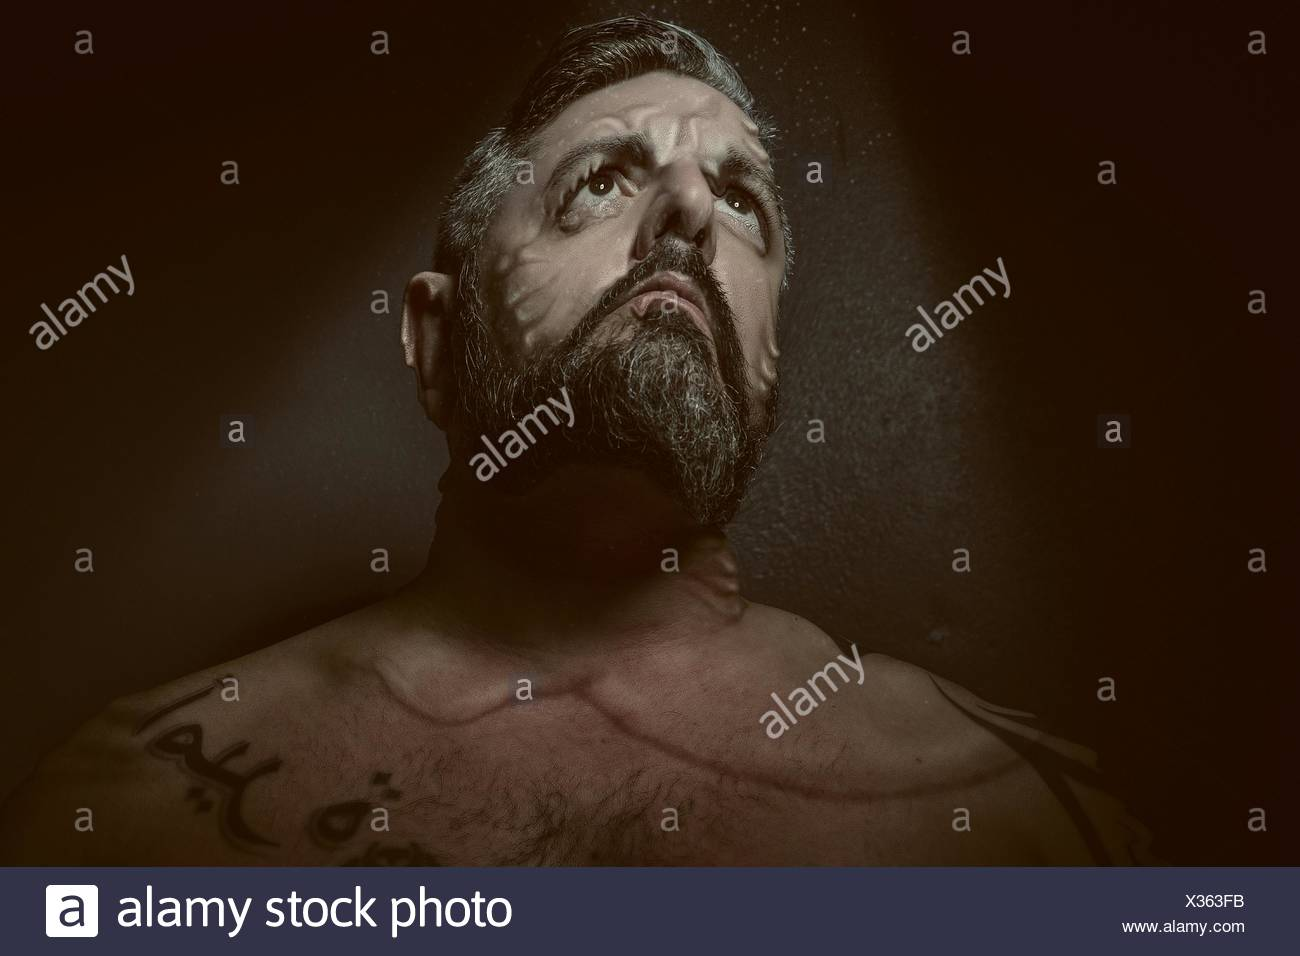 Bizarre Shot Of Man With Disfigured Face Looking Up - Stock Image